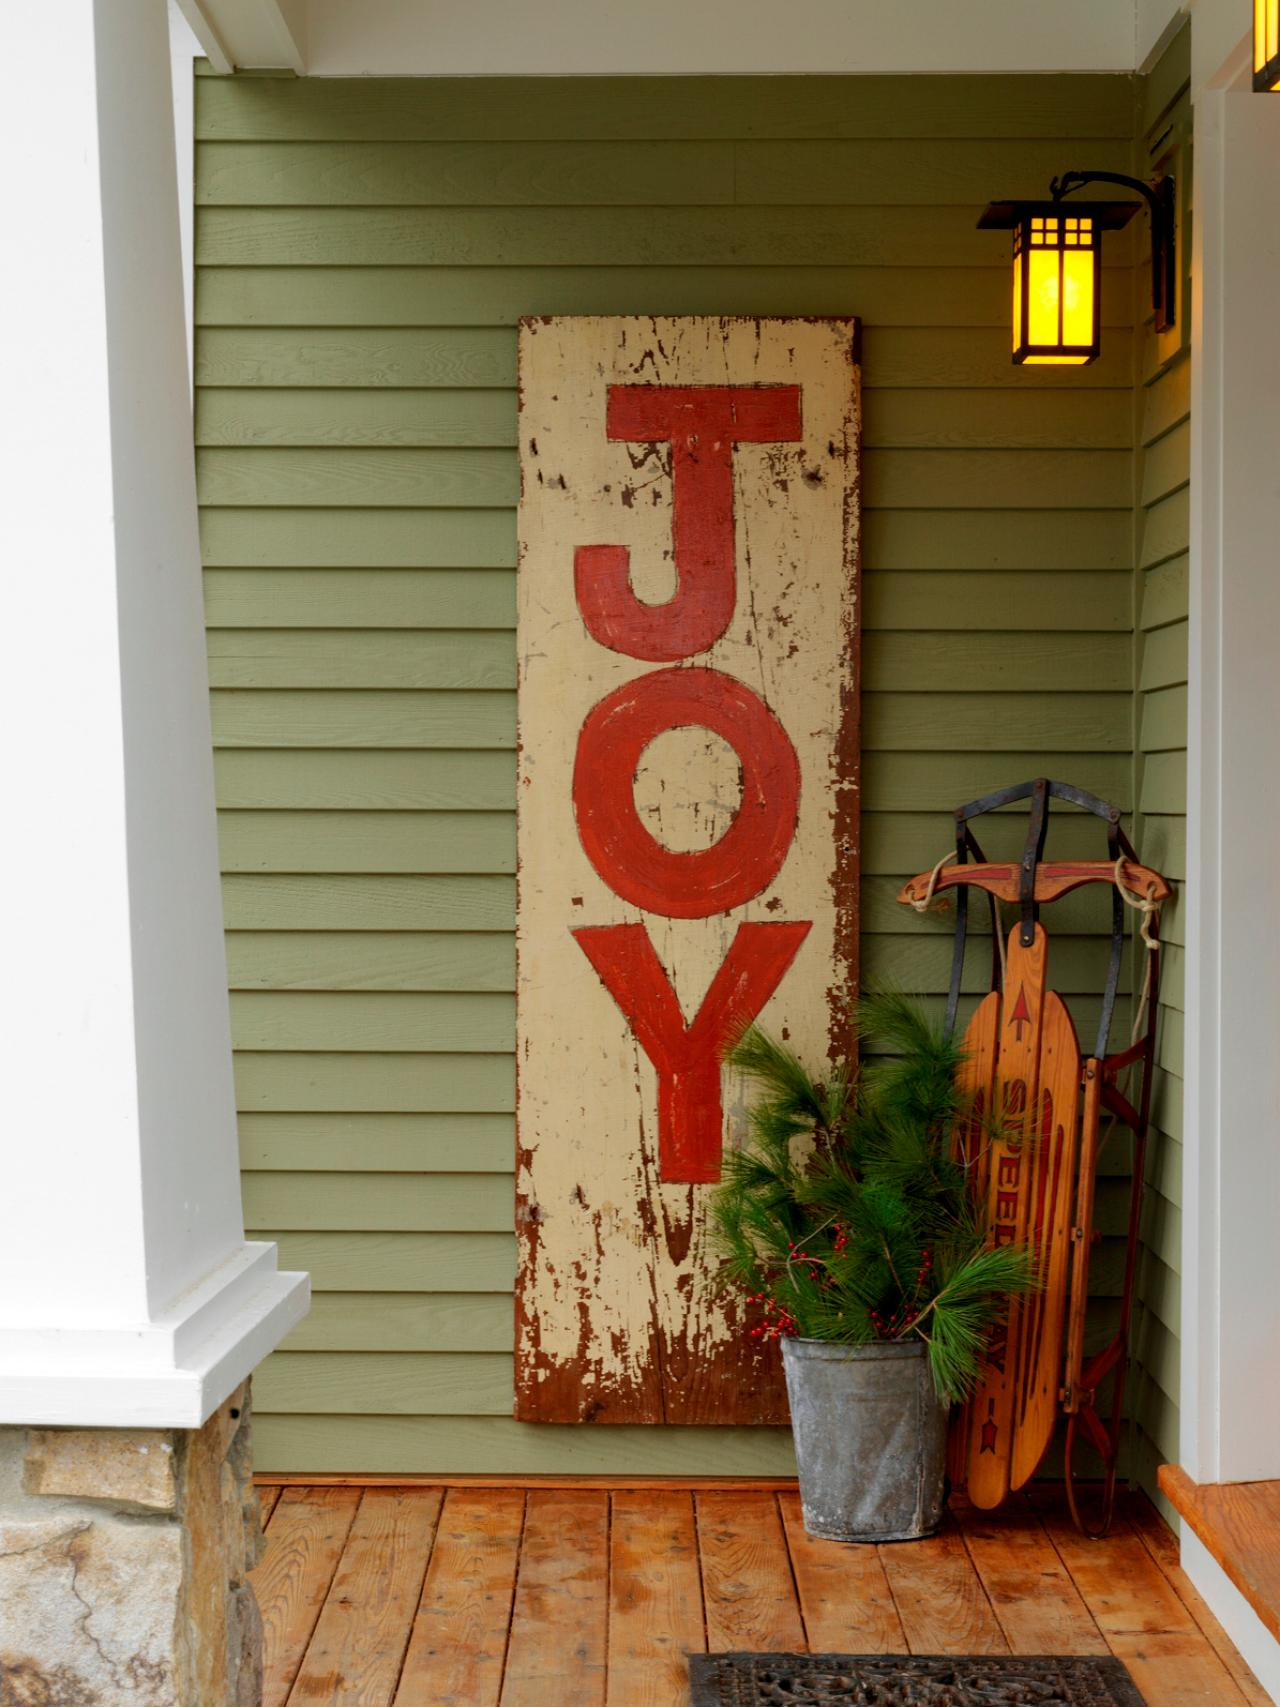 Last Minute Christmas Porch Decor Ideas Hgtv S Decorating Design Blog Hgtv